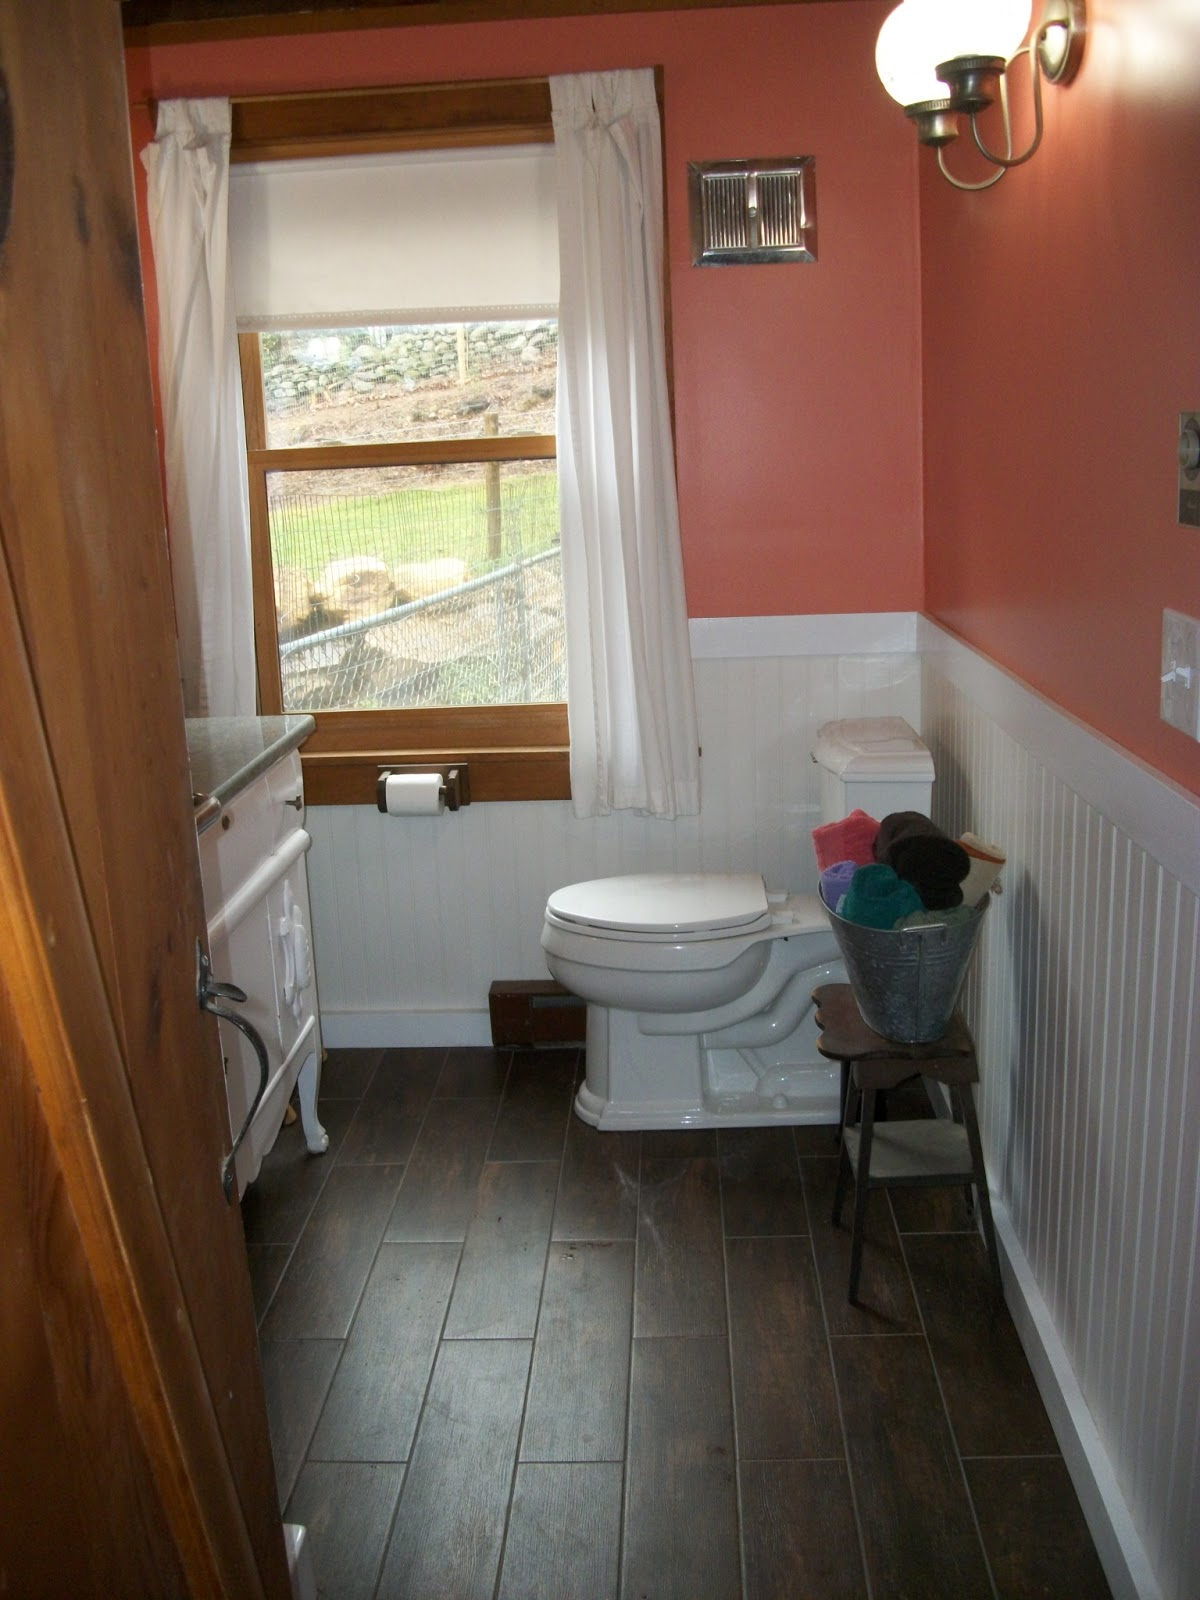 BlackBirchFarm: Bathroom Renovation Completed